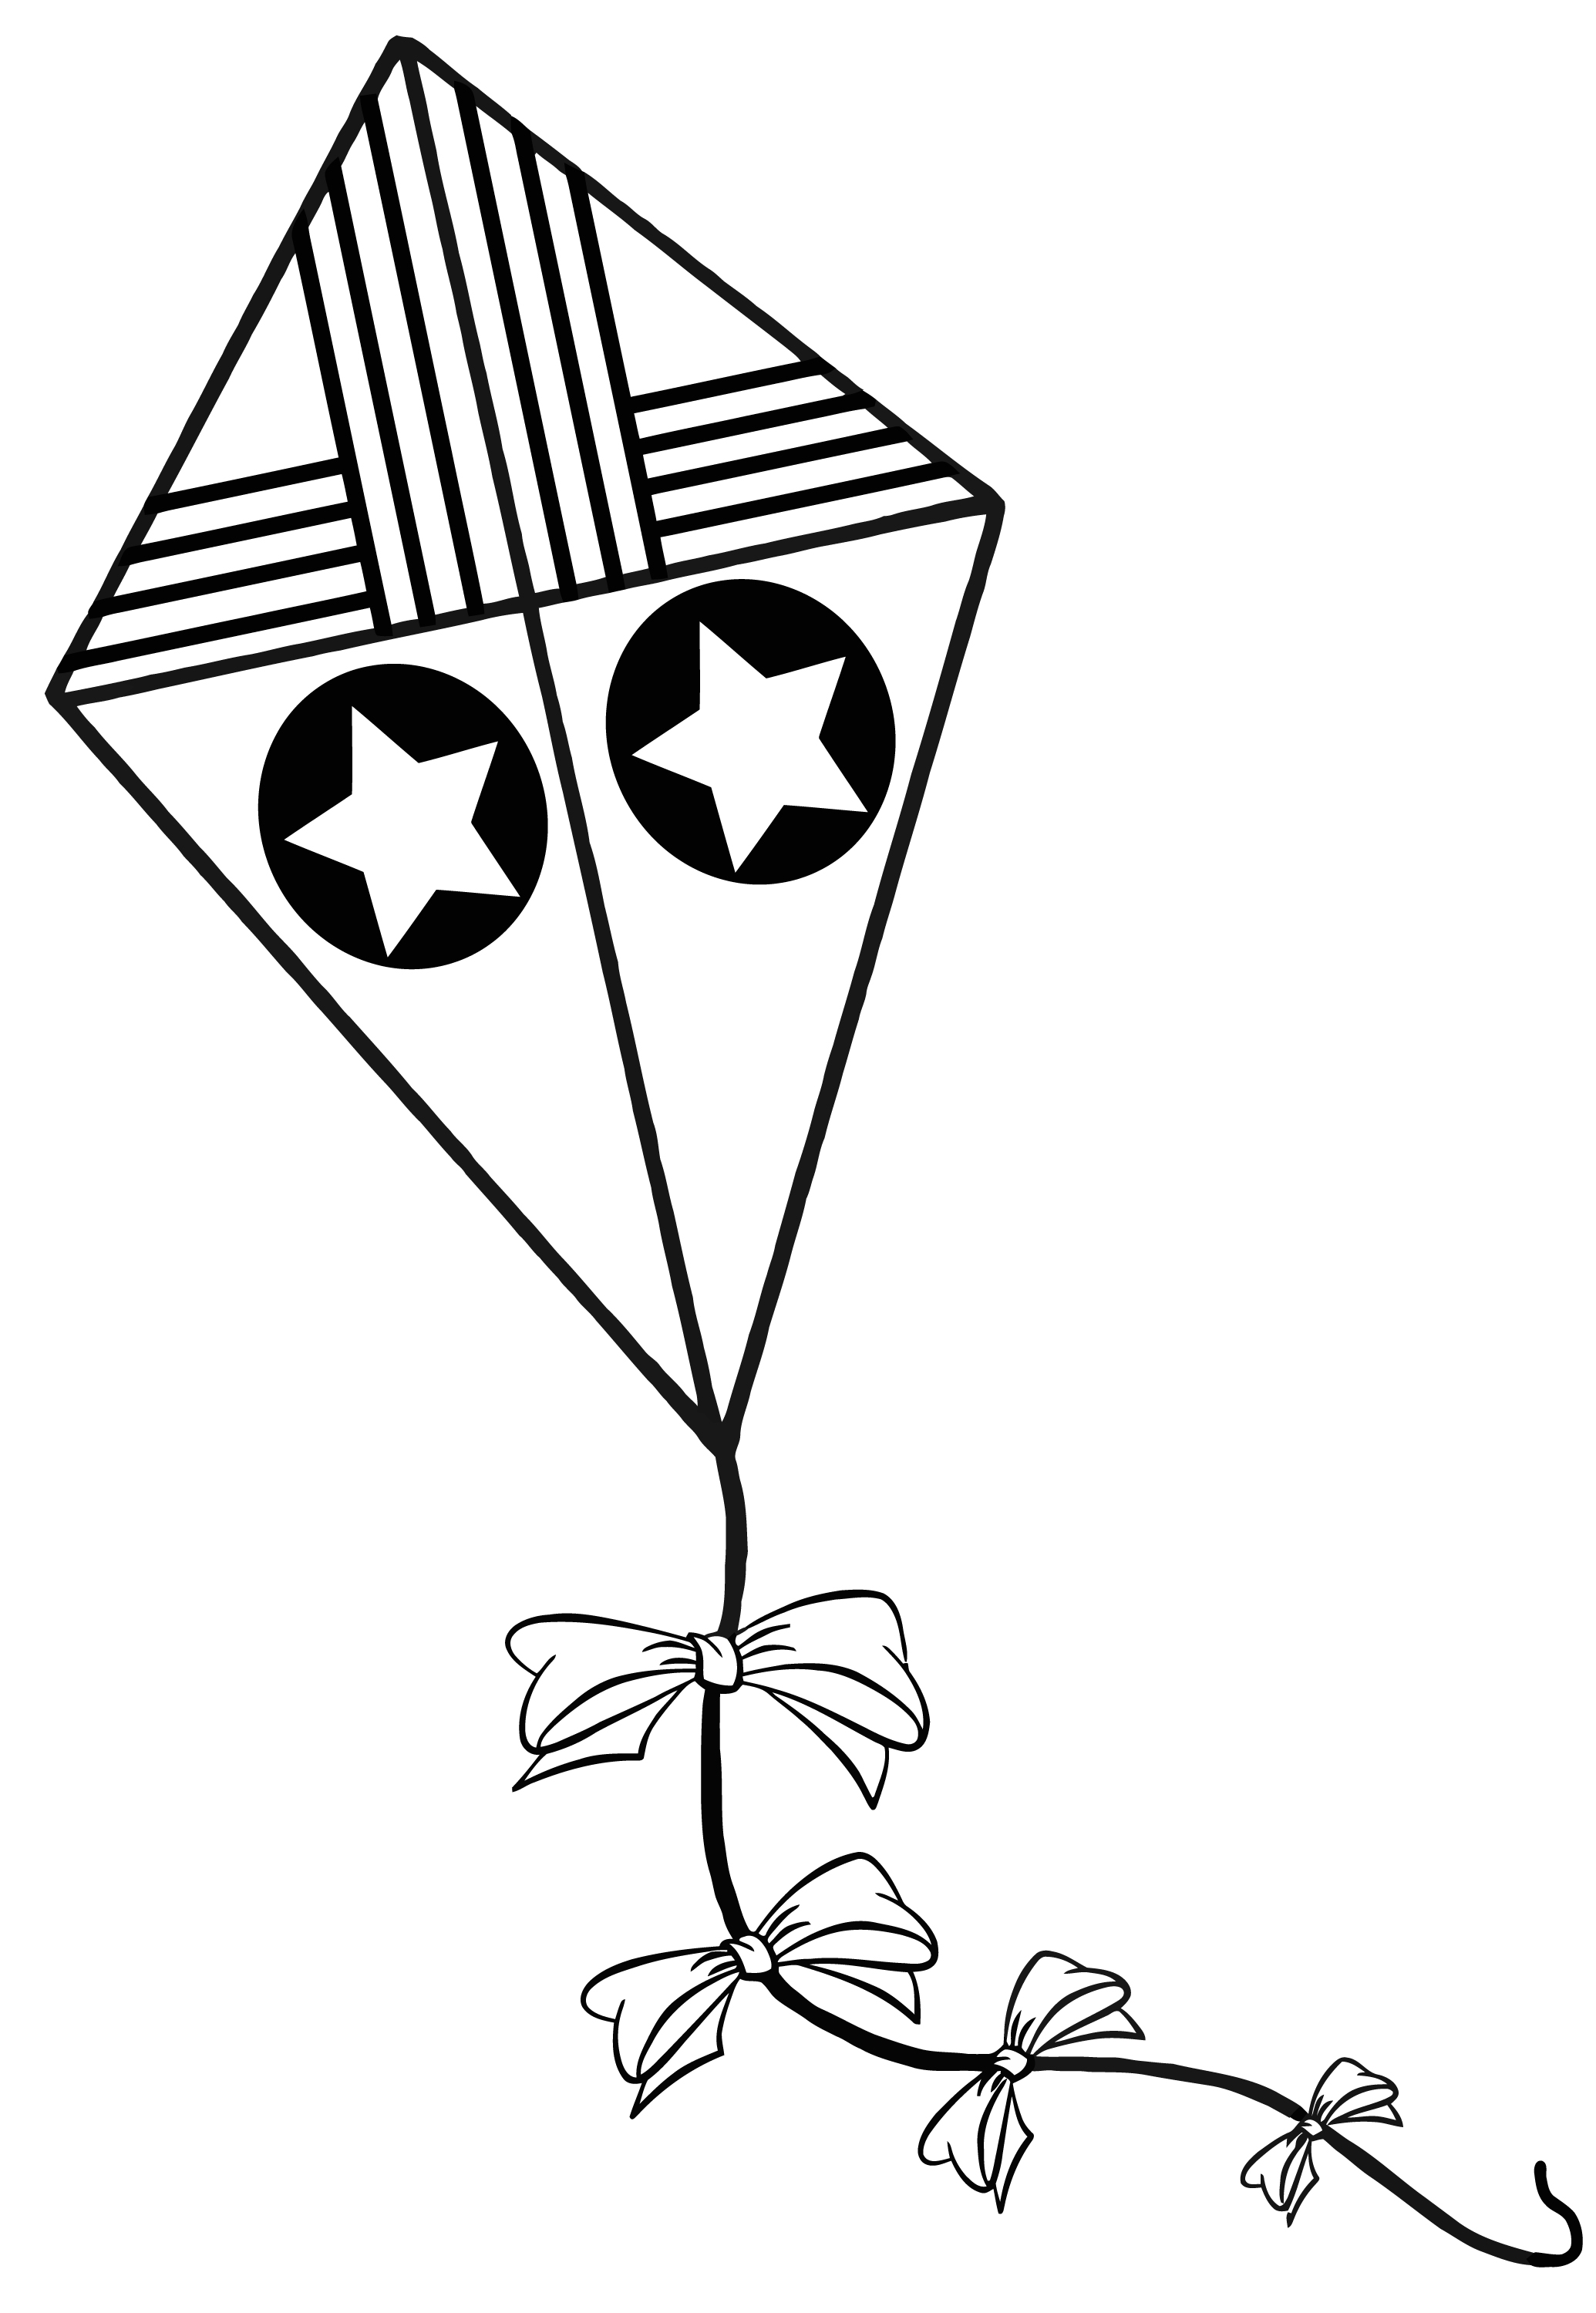 kite for coloring kite printable fun family crafts for coloring kite